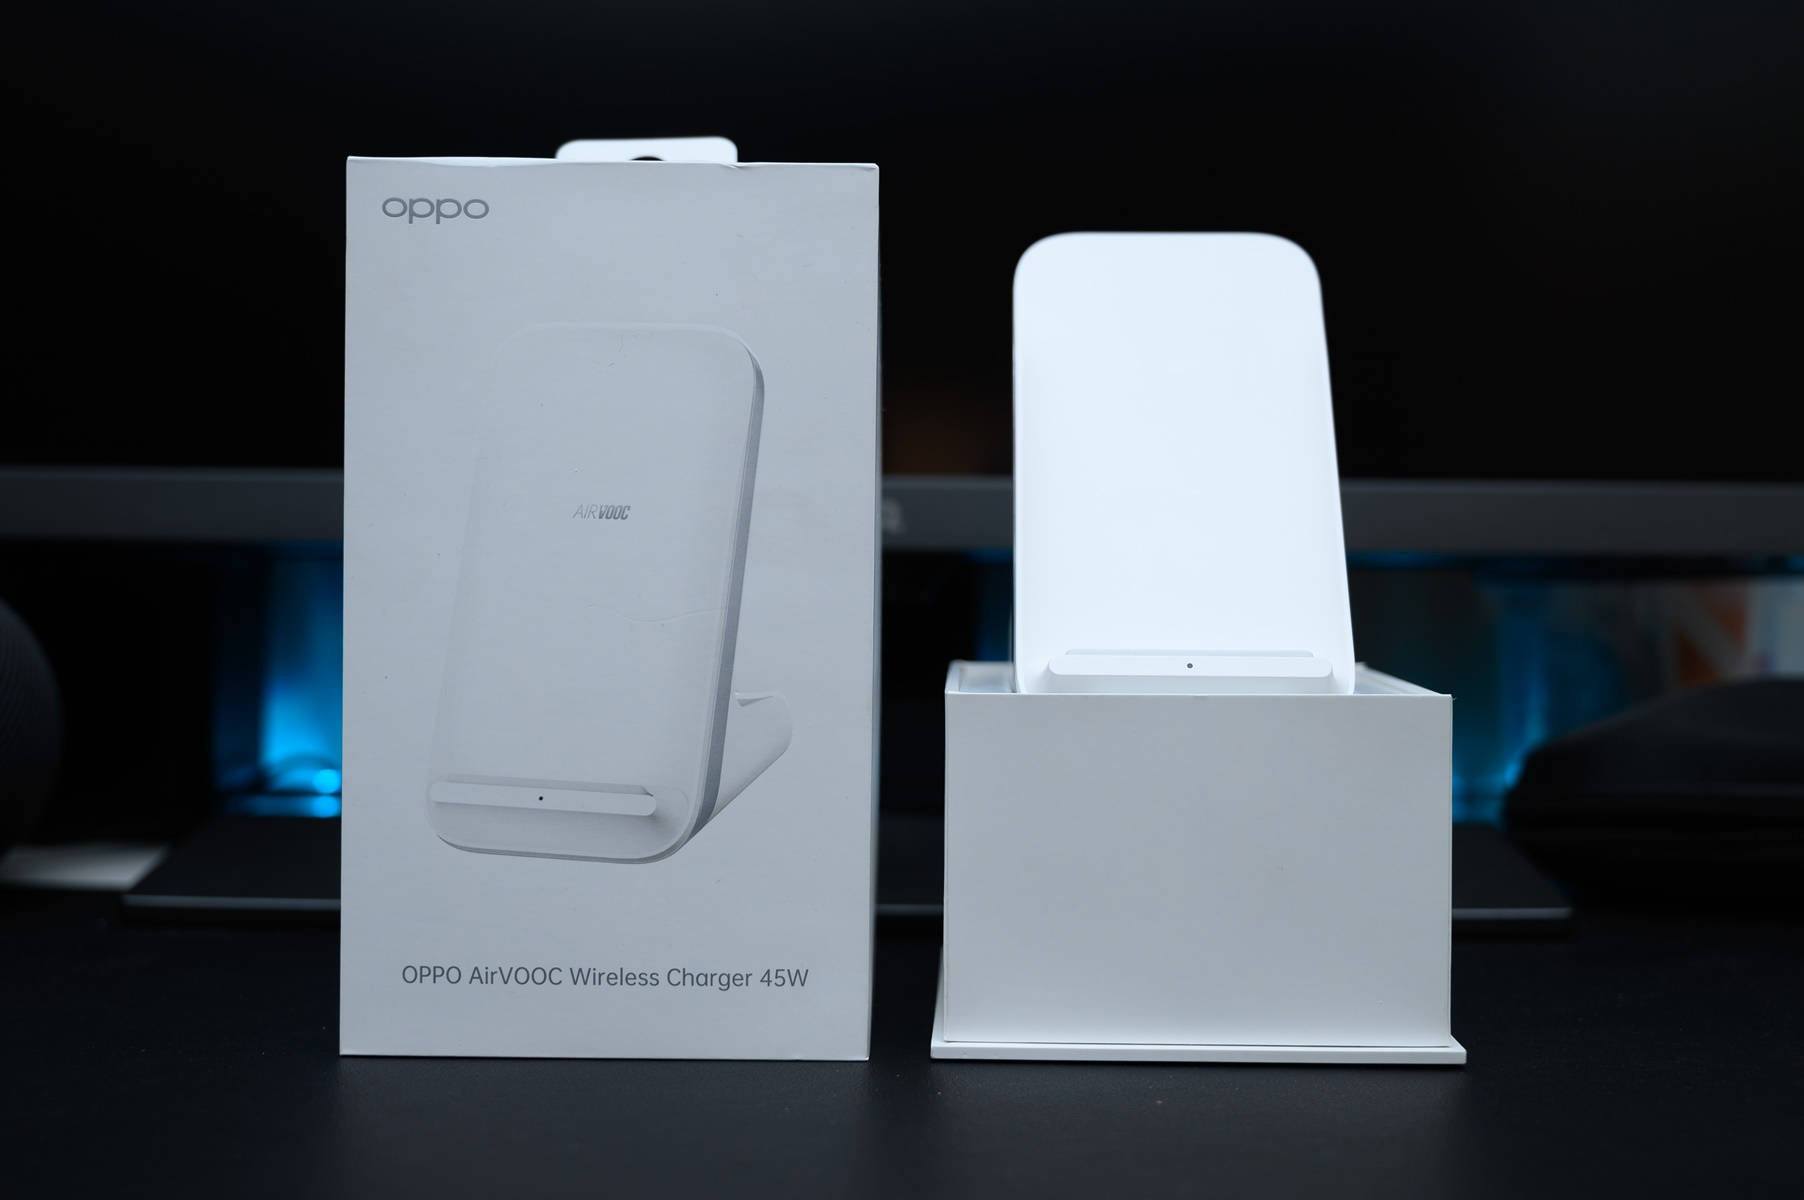 AirVOOC Wireless Flash Charge